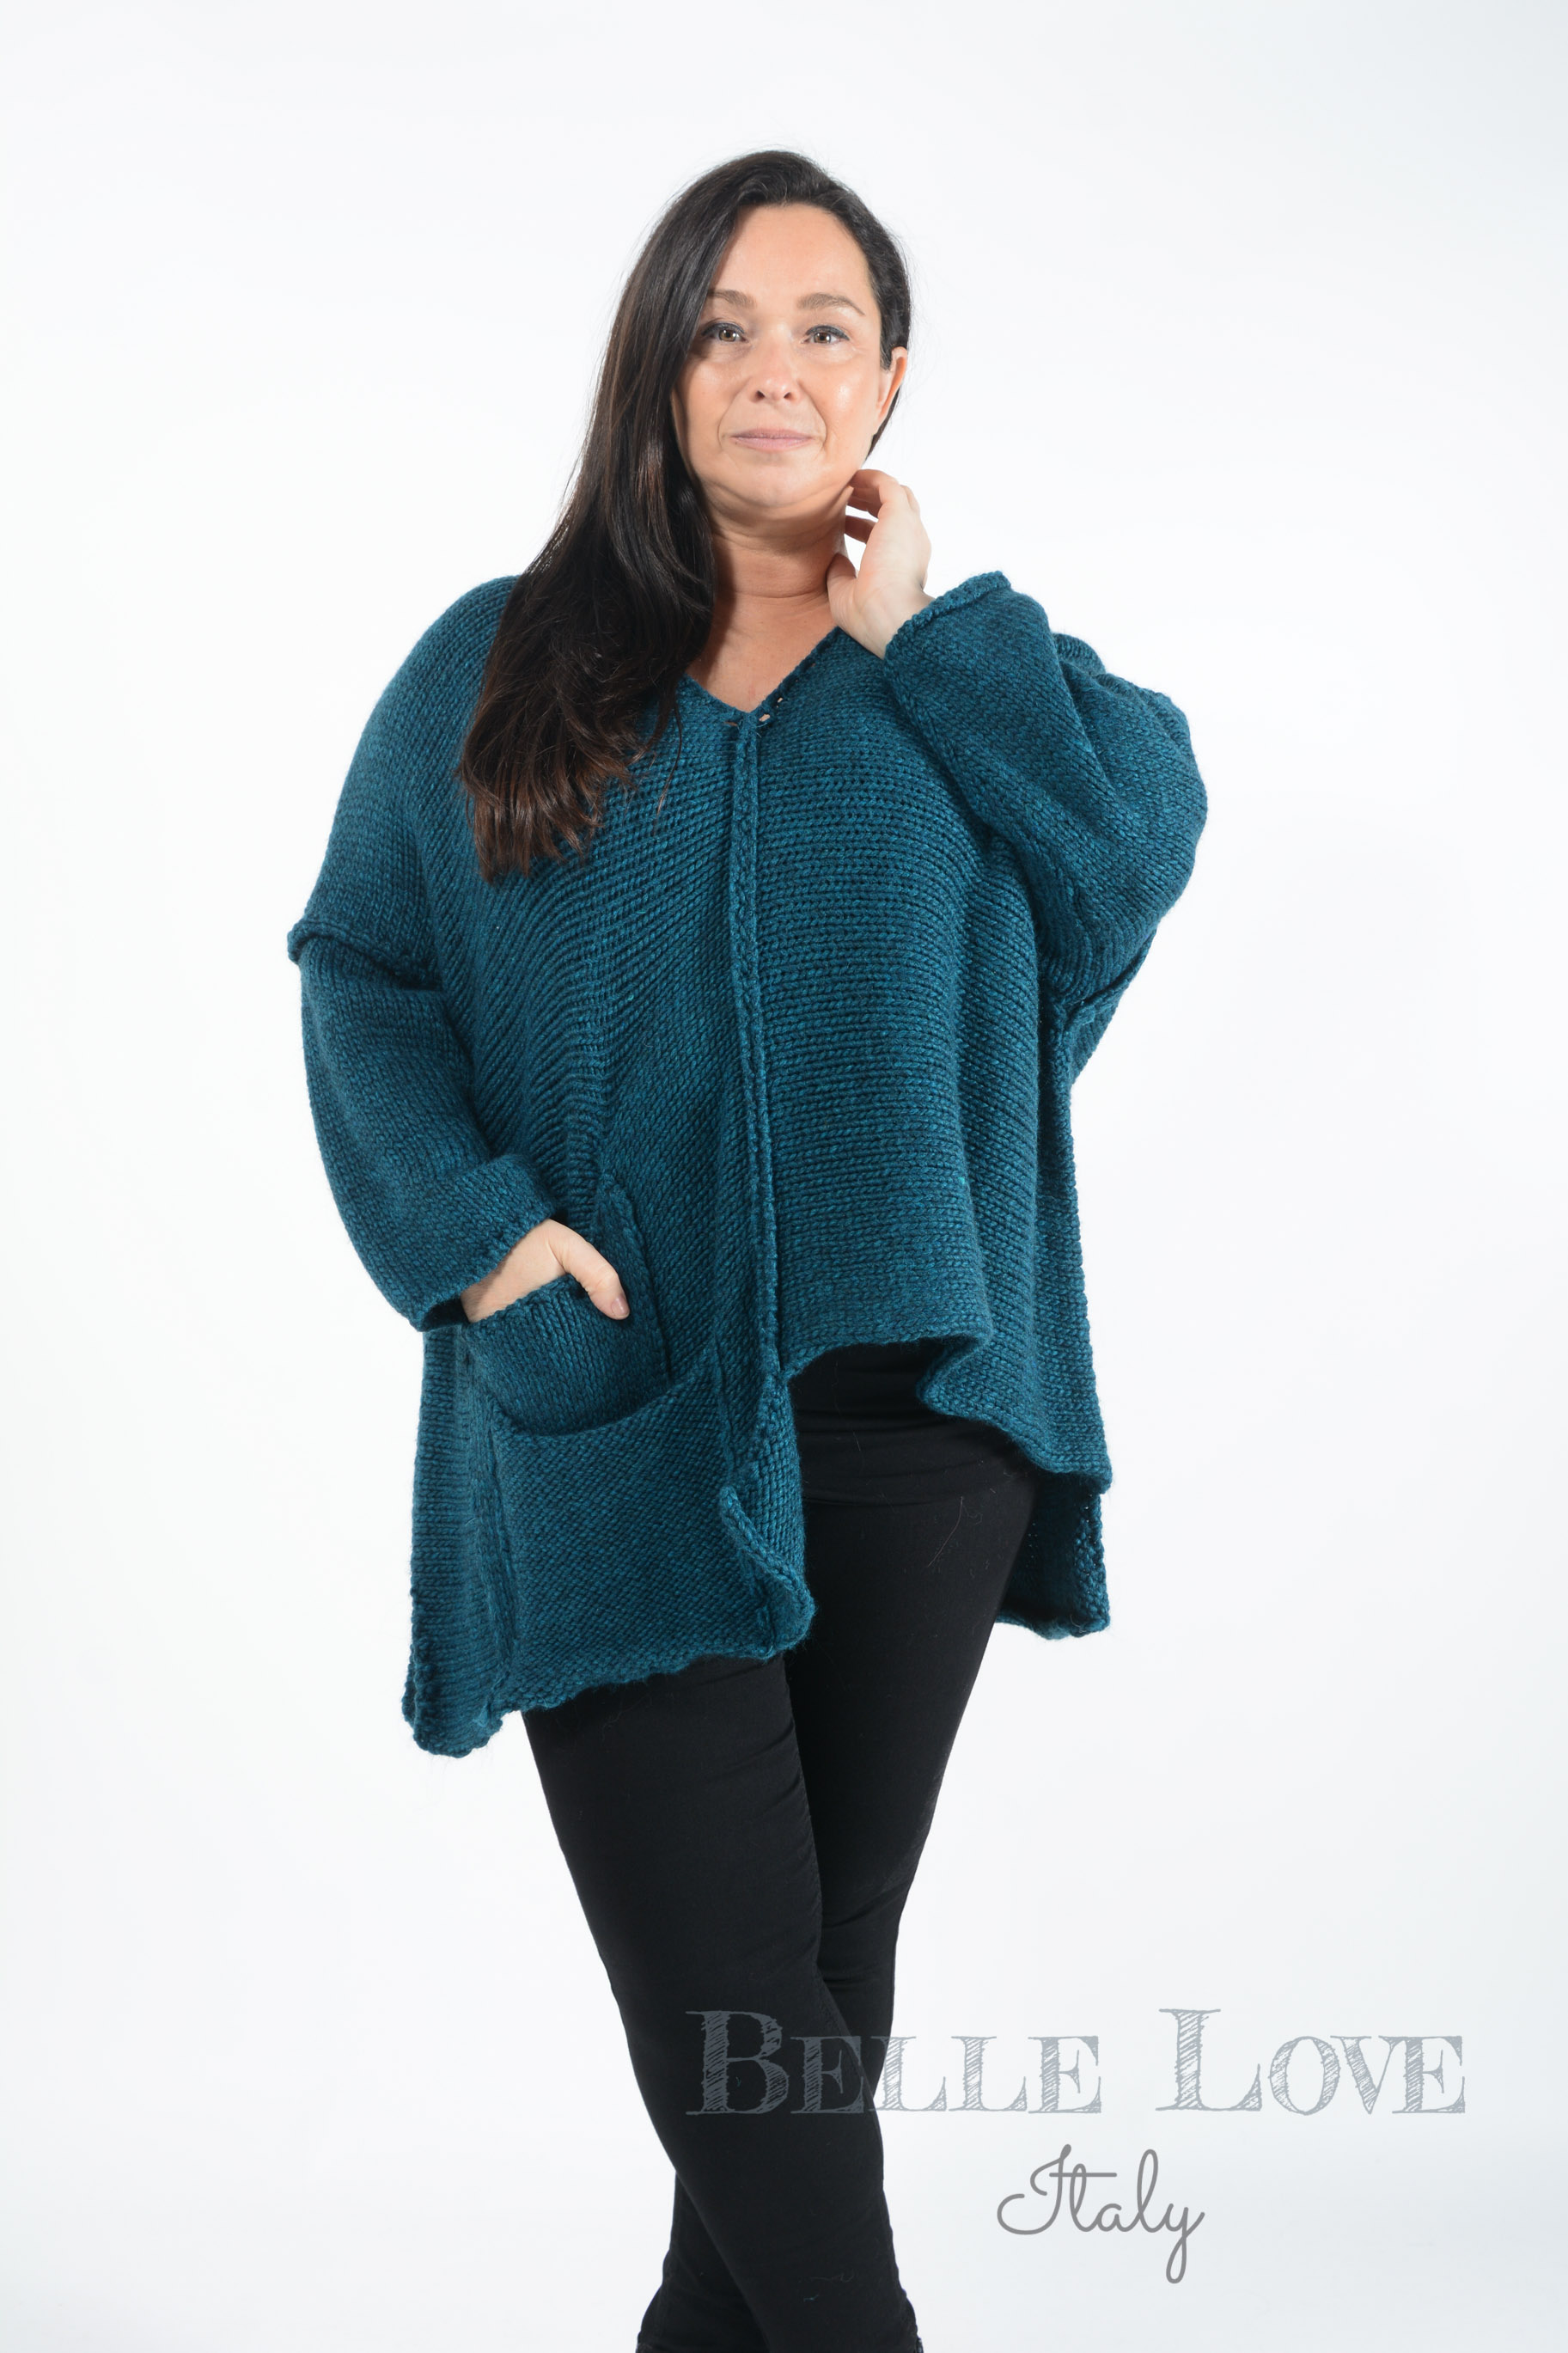 Belle Love Italy Molly Chunky Knit Jumper